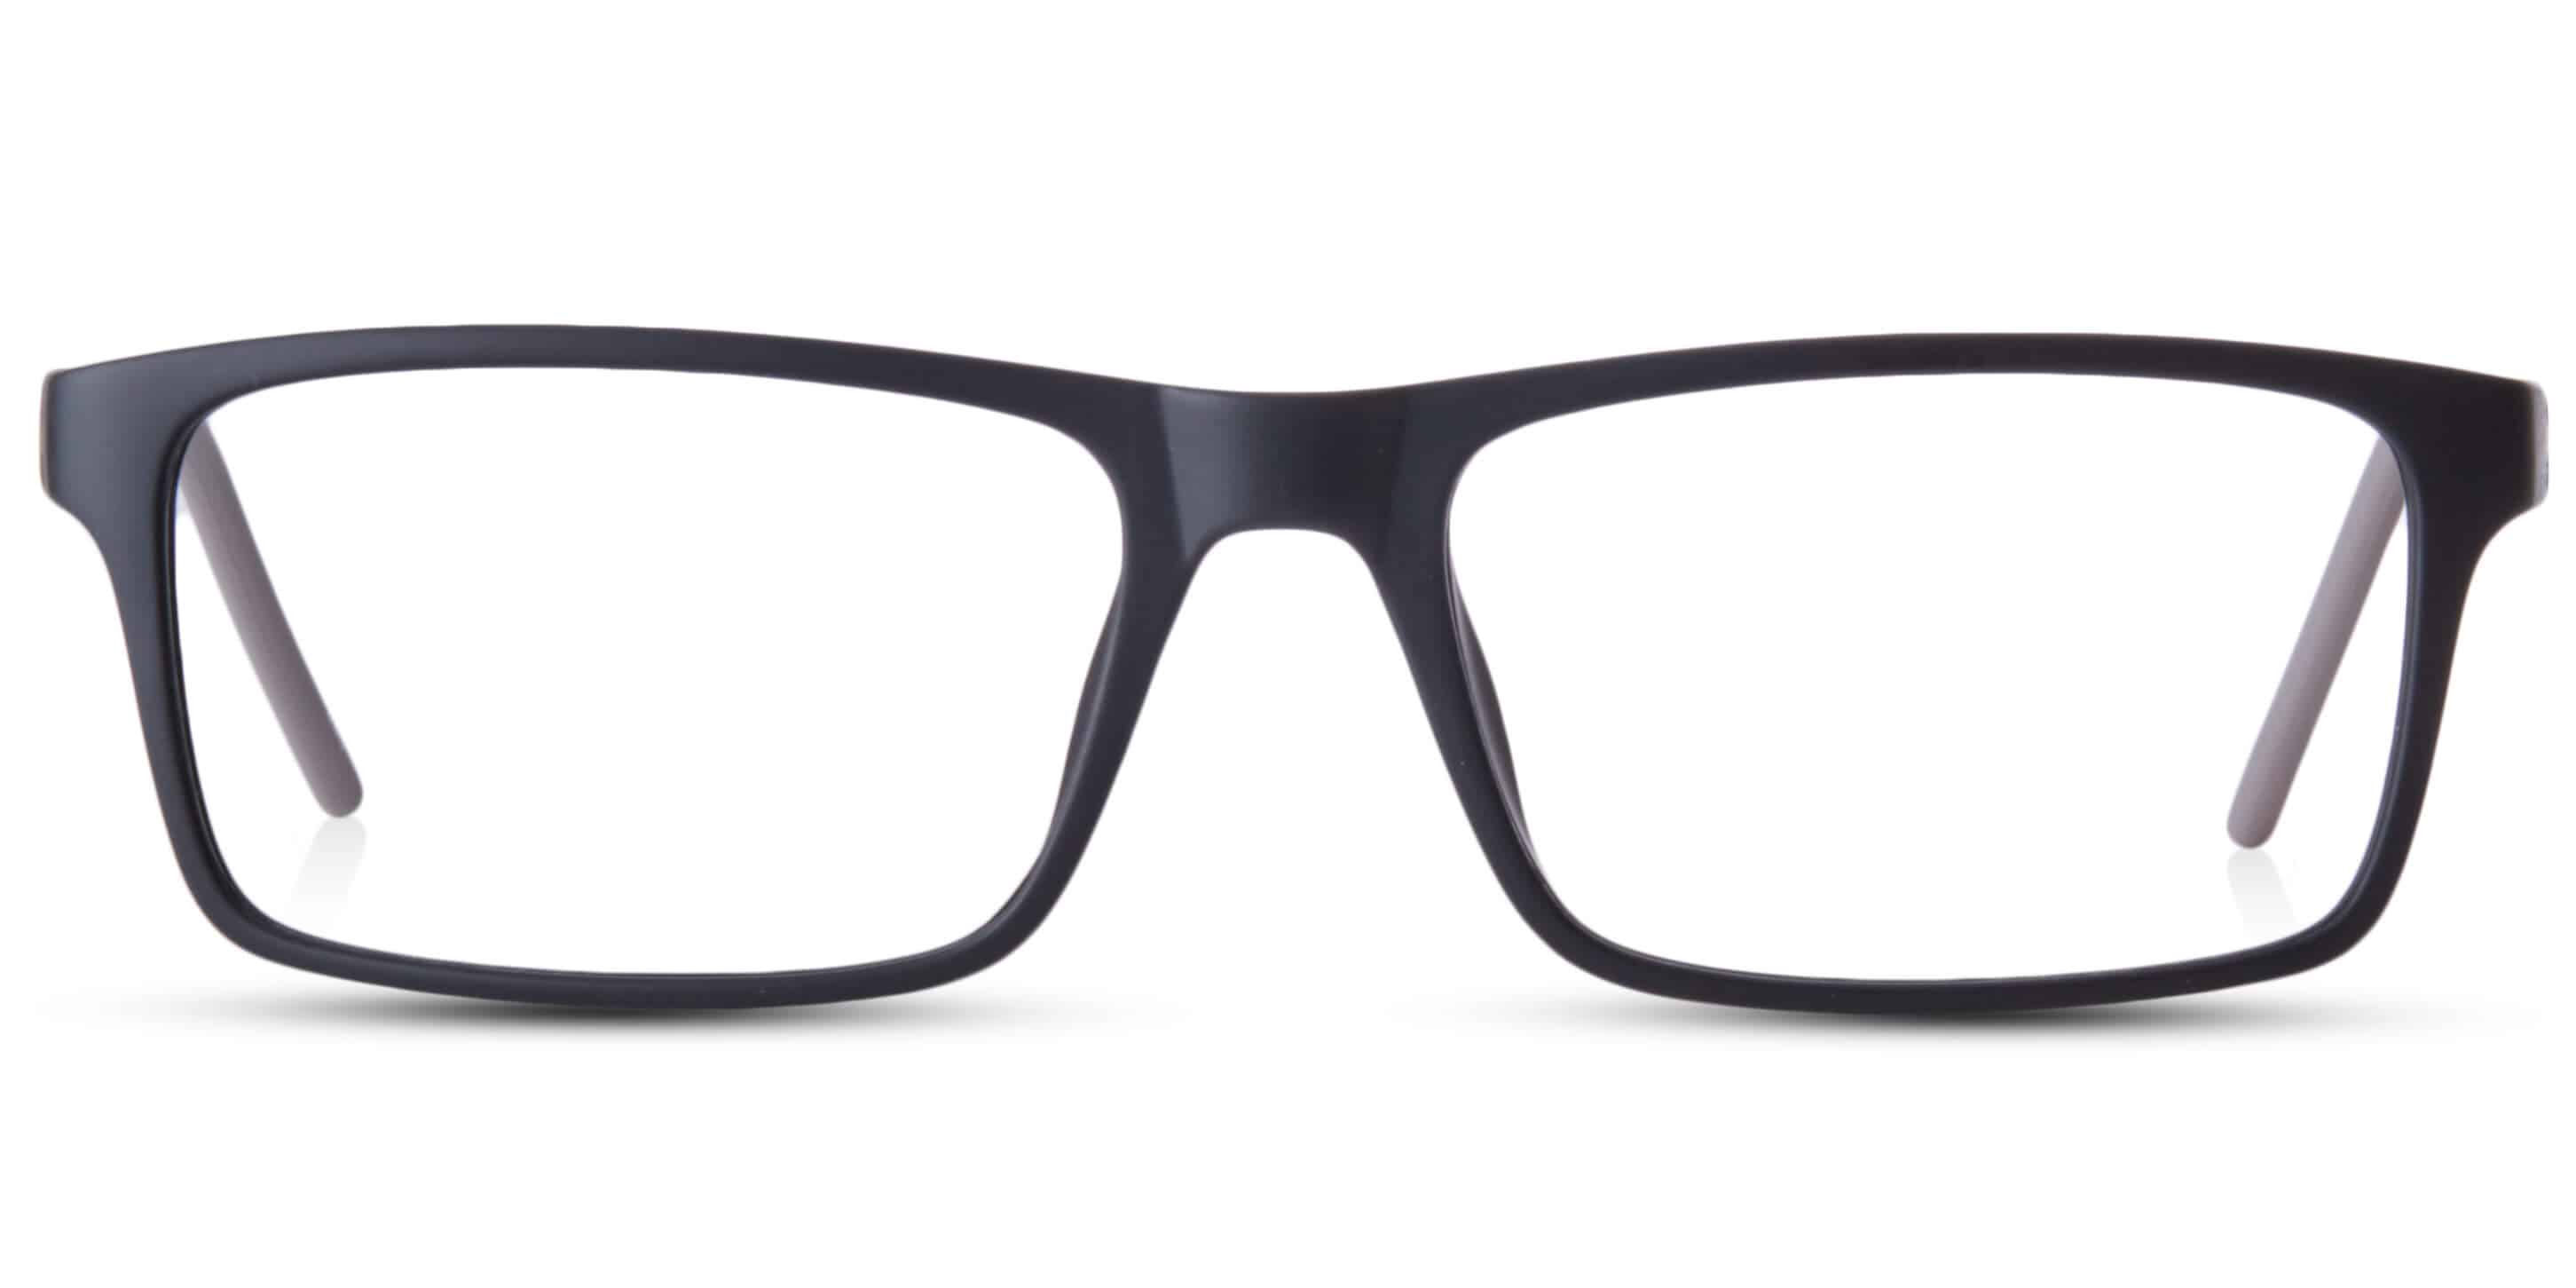 WILSON - Black plastic glasses with colored temples | Glasses4U